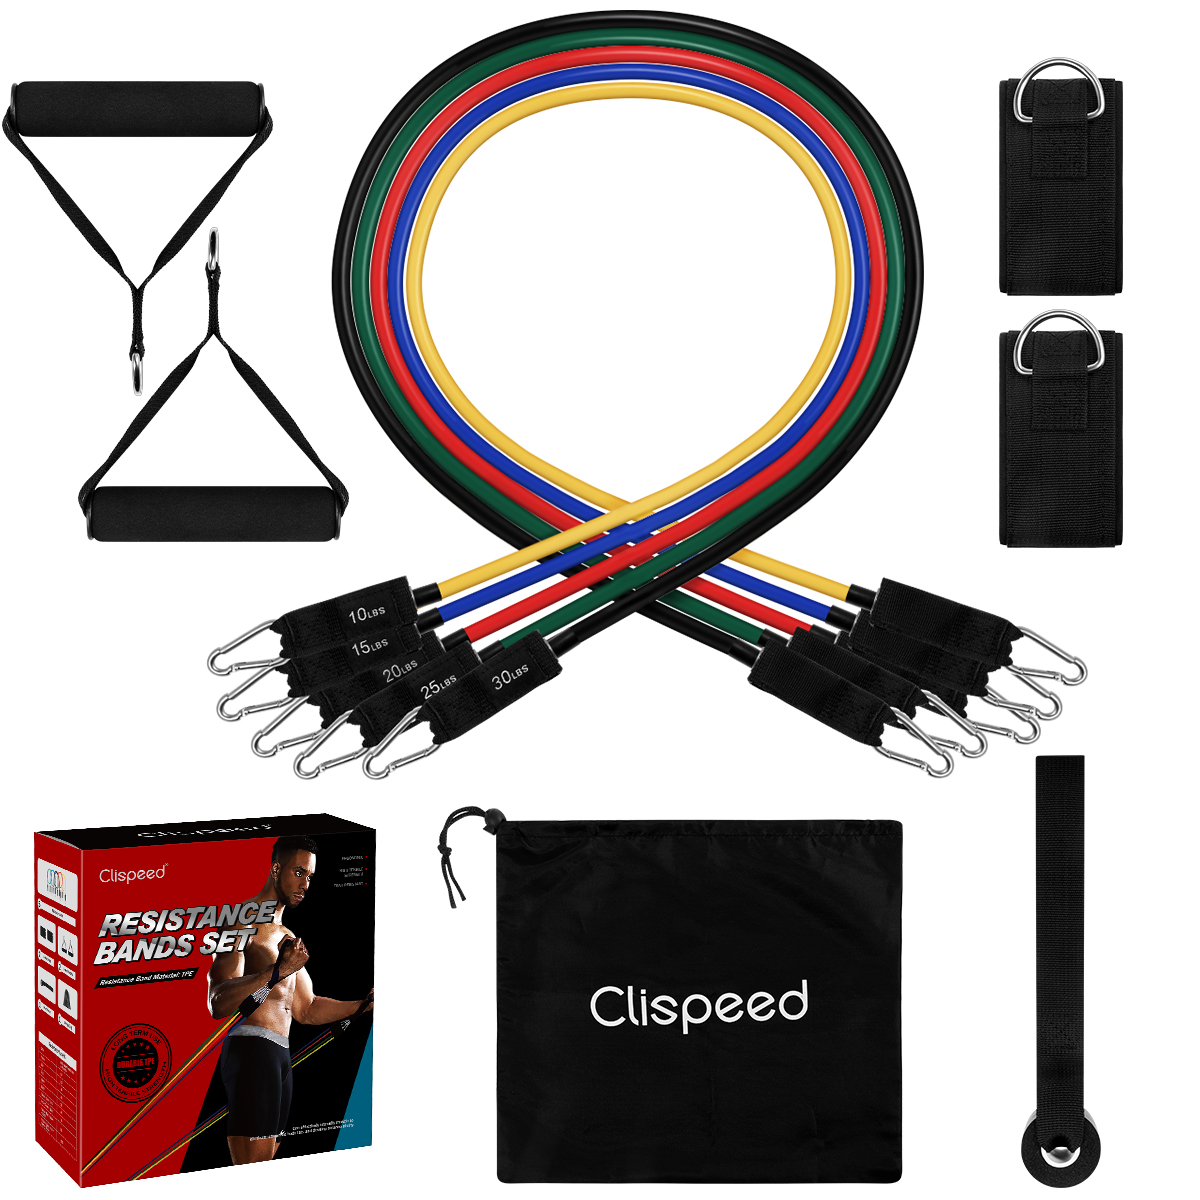 11pcs Resistance Bands Set Stackable Workout Fitness Bands With Door Anchor Ankle Straps Foam Handles Storage Bag For Gymnastics image